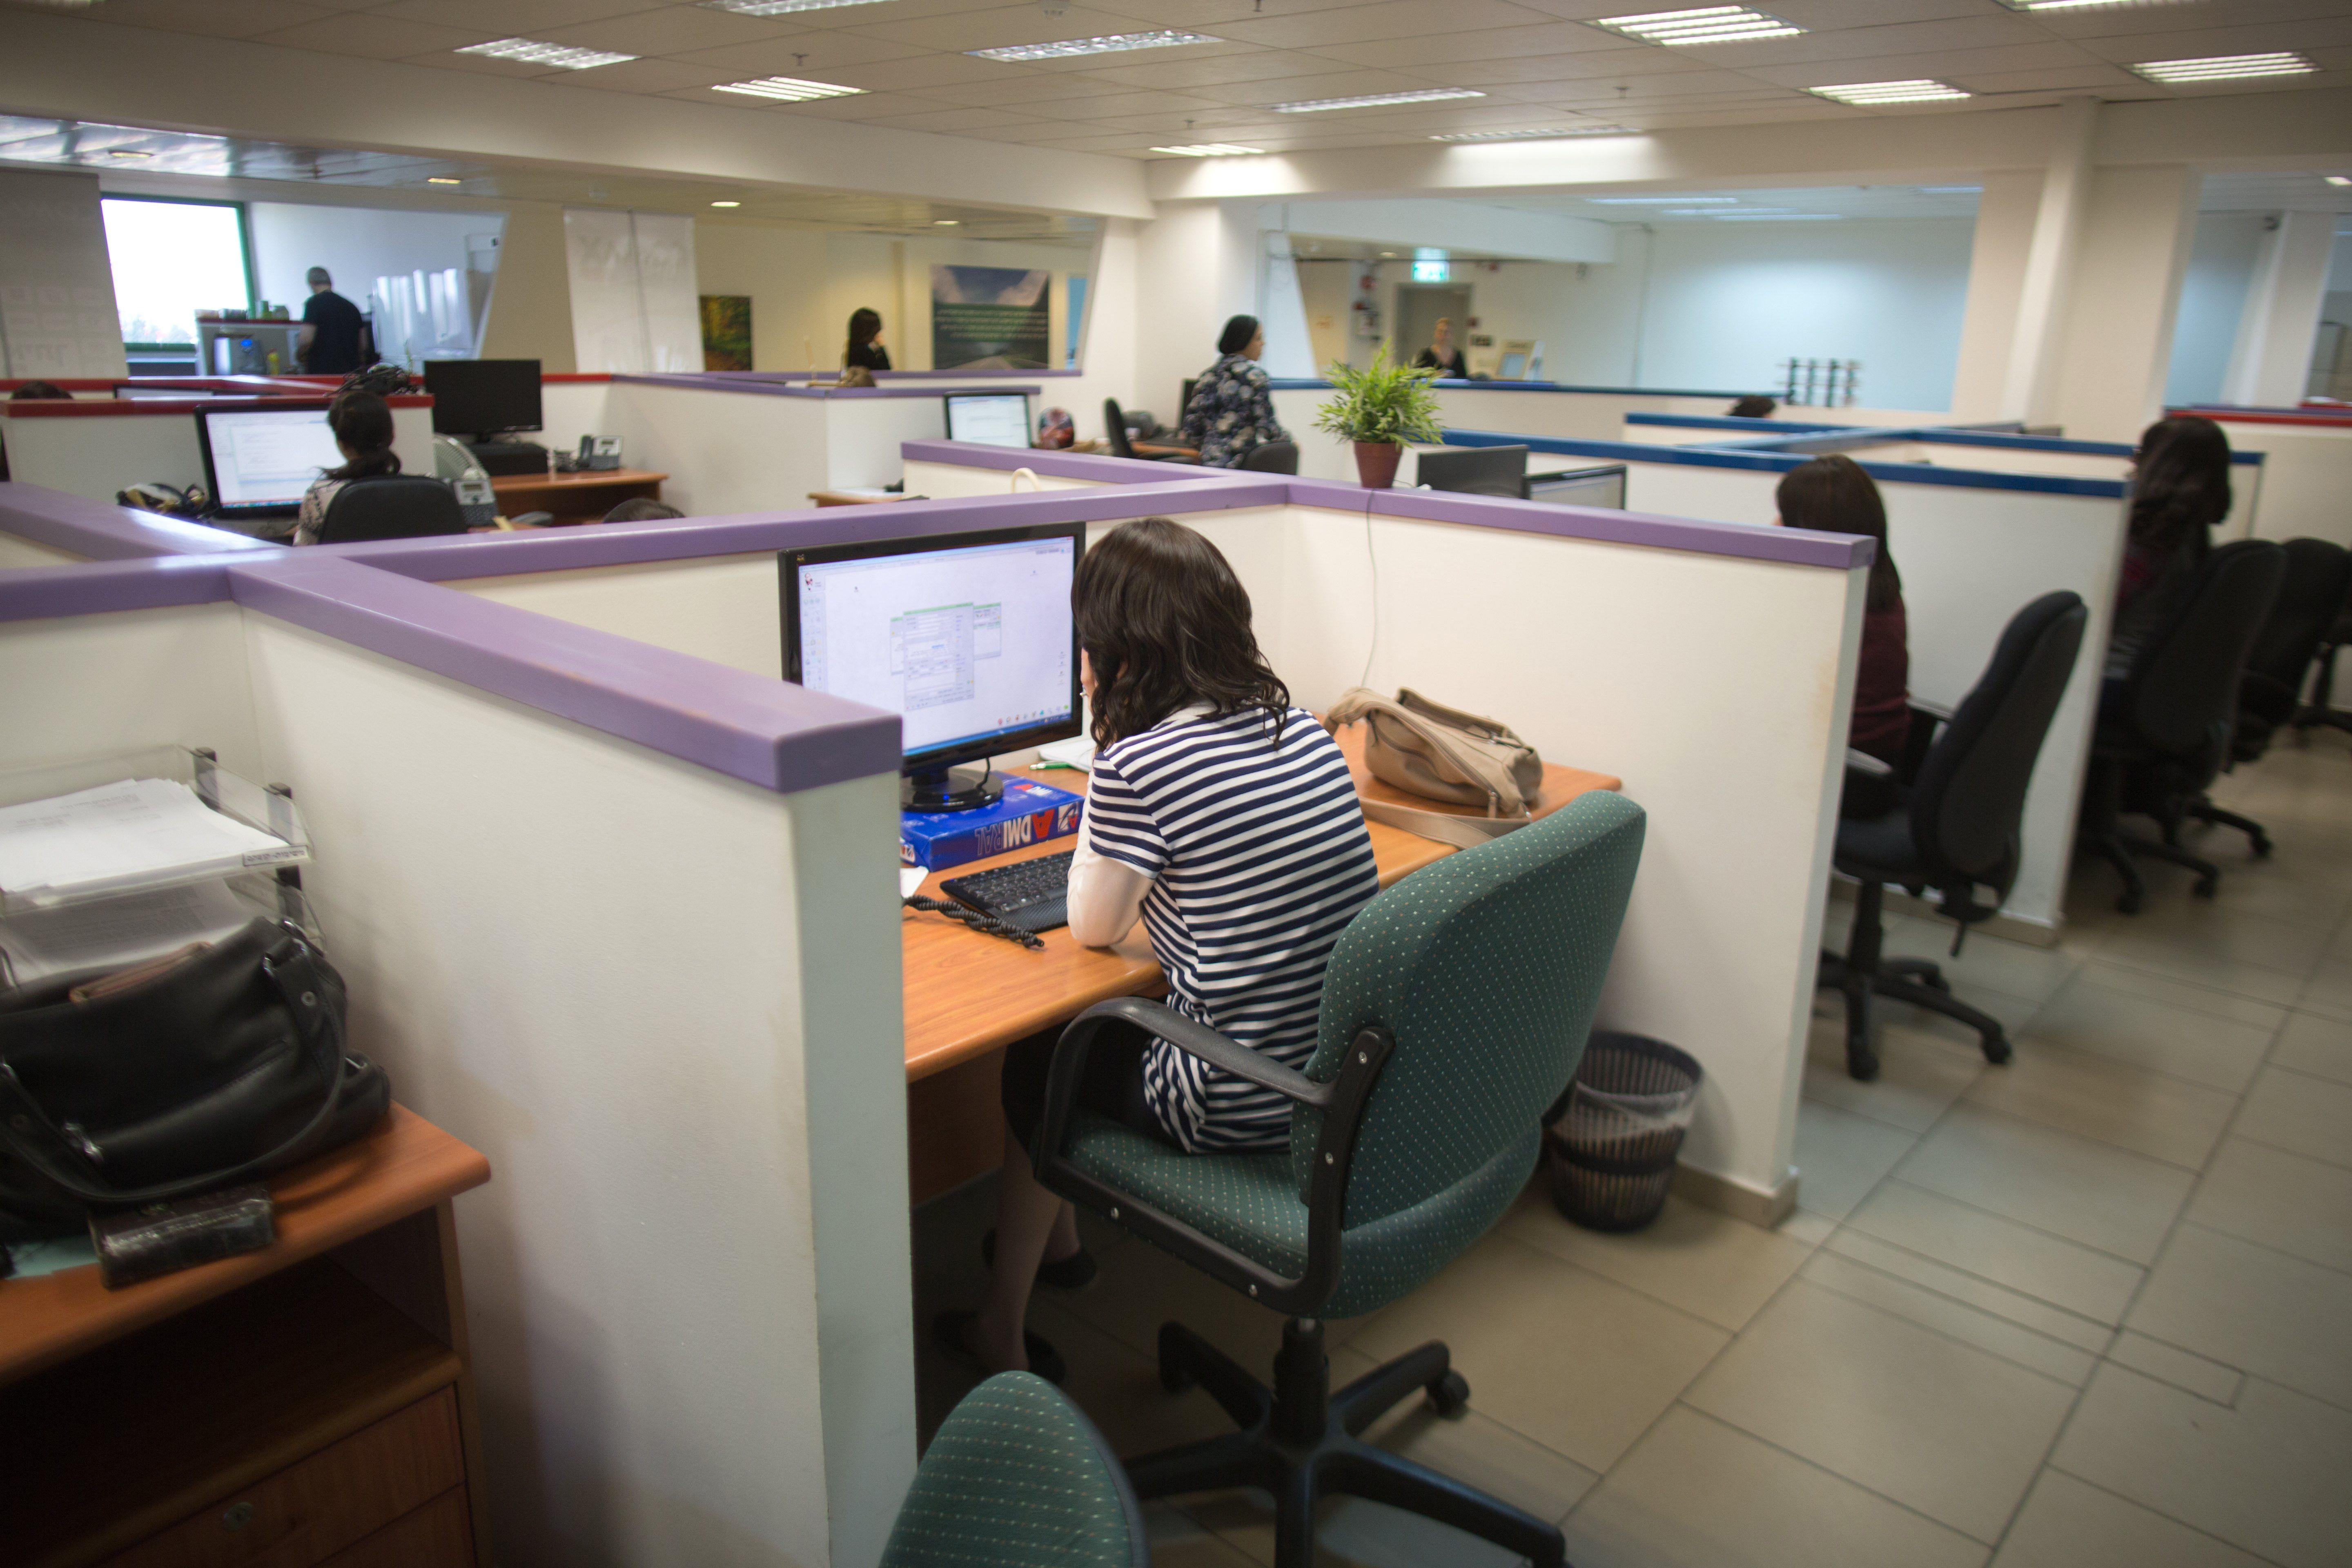 People sitting at computers in cubicles inside an office.